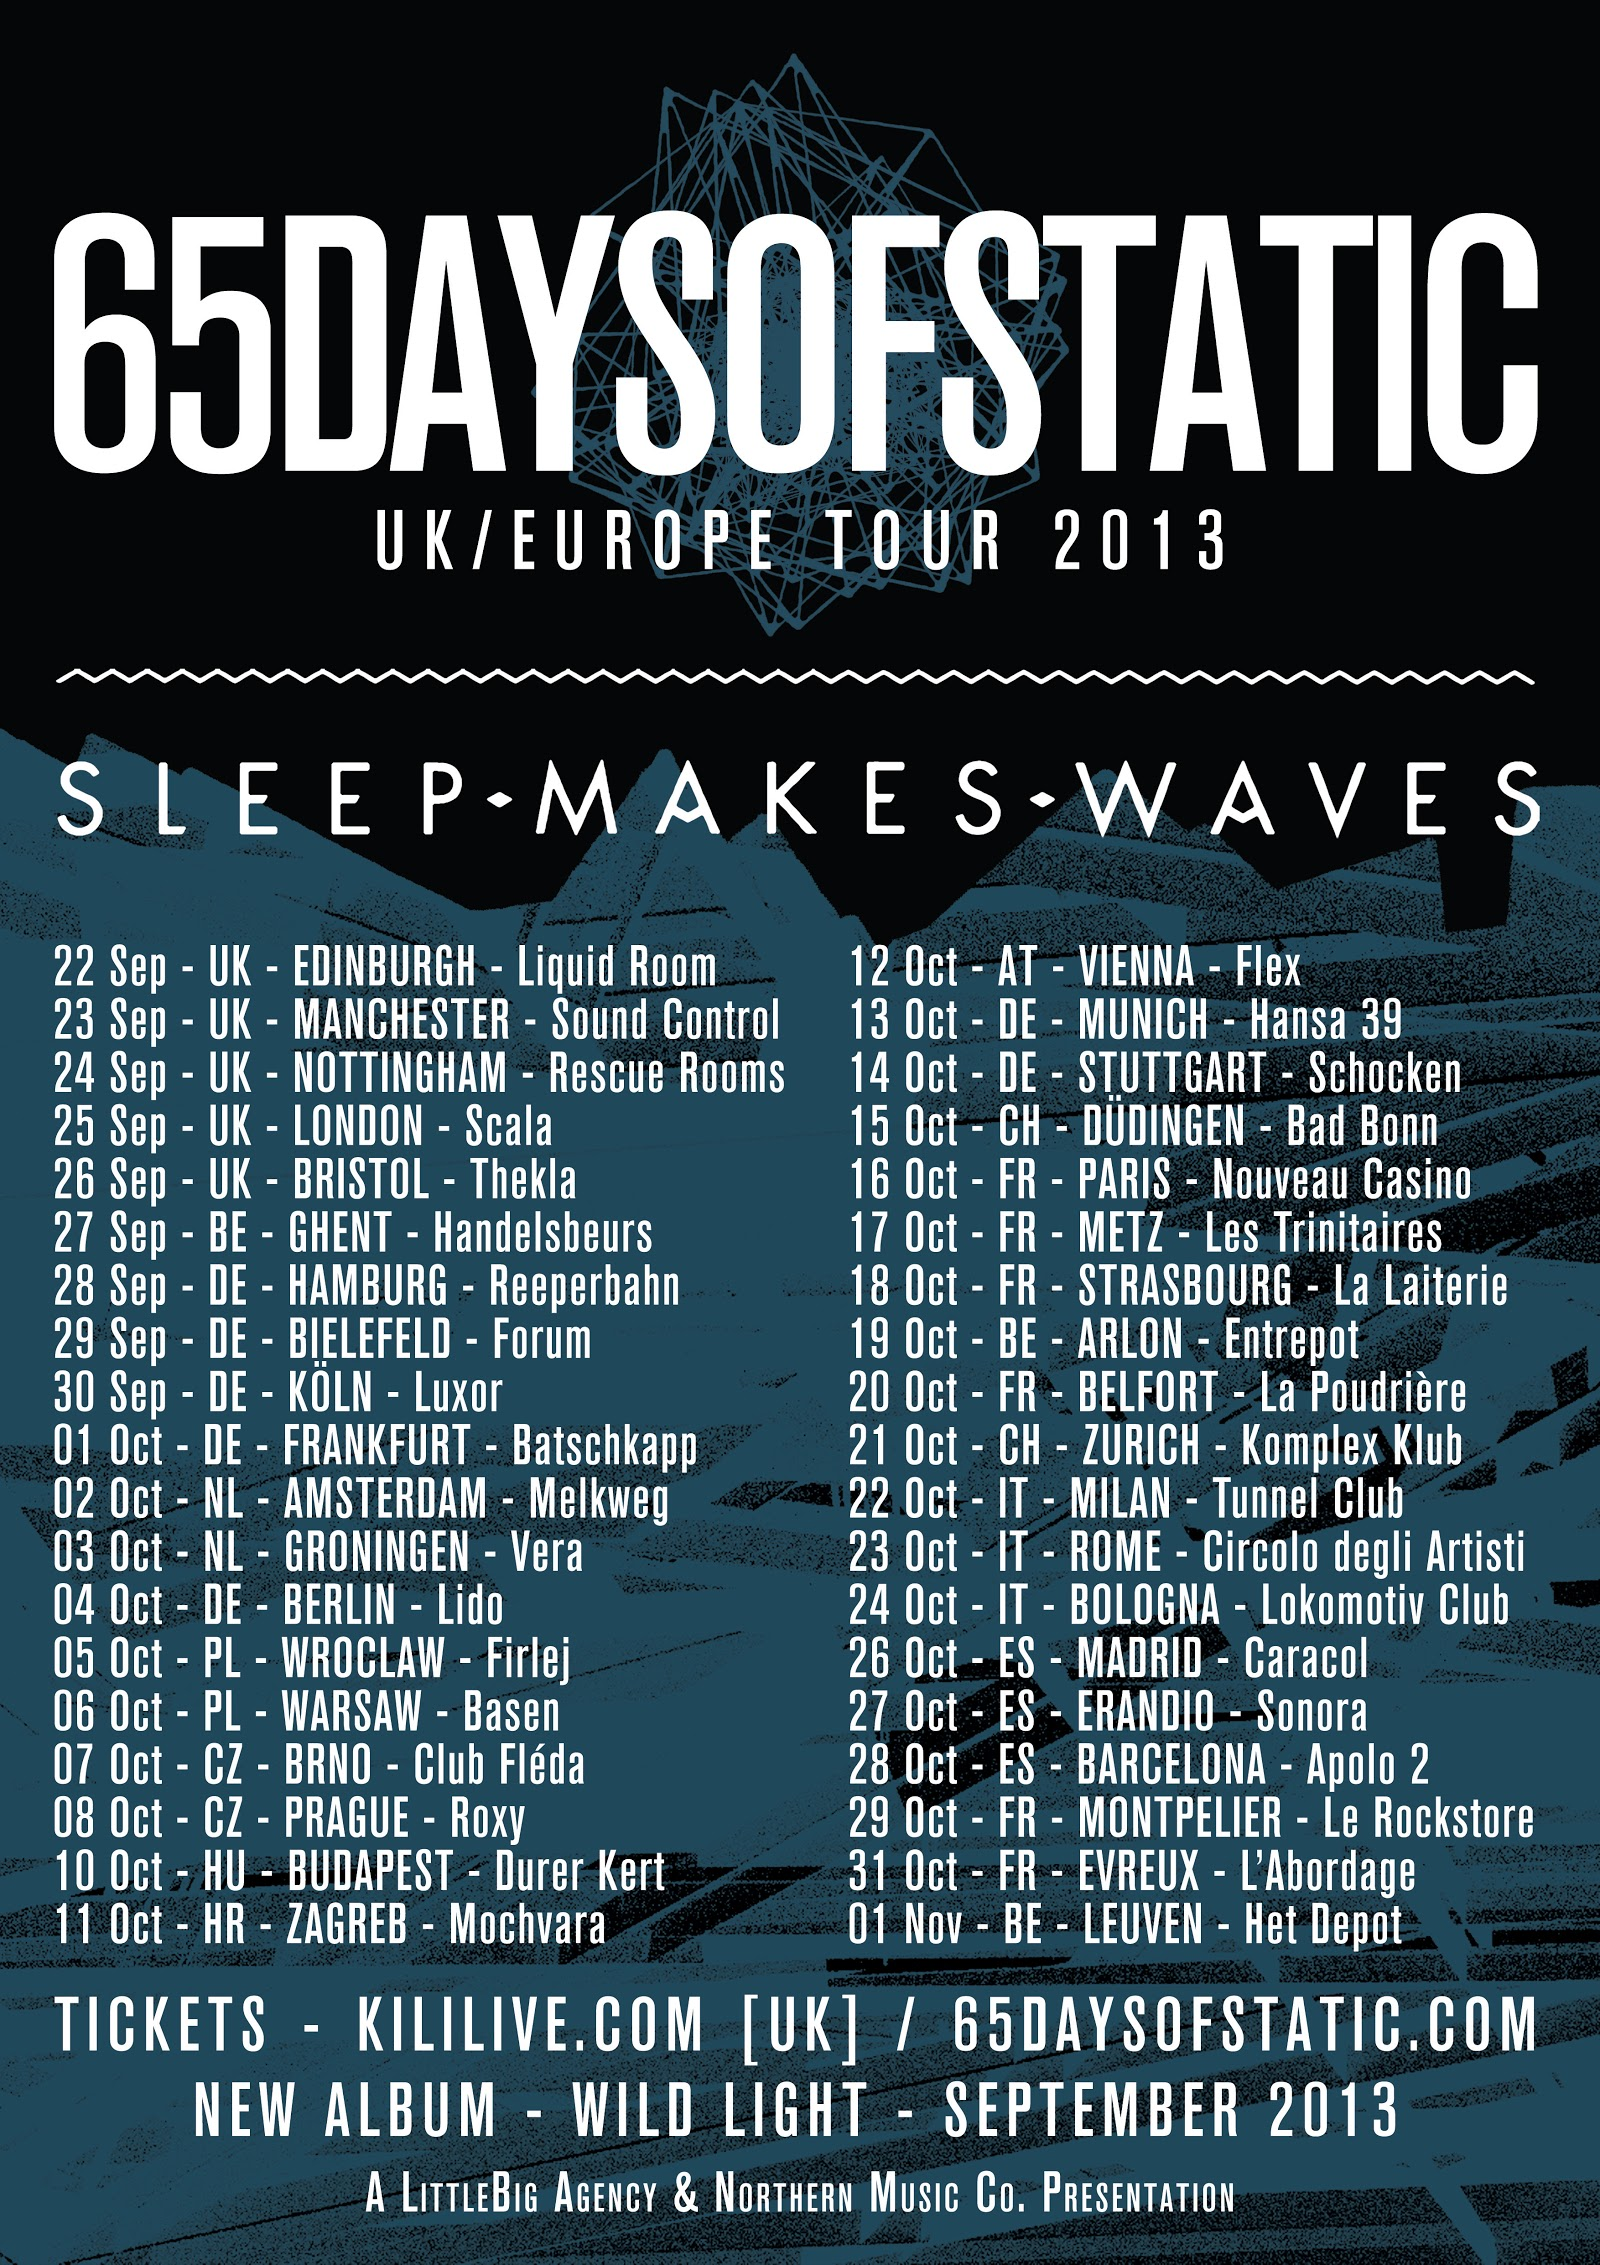 UK & Europe tour with 65daysofstatic